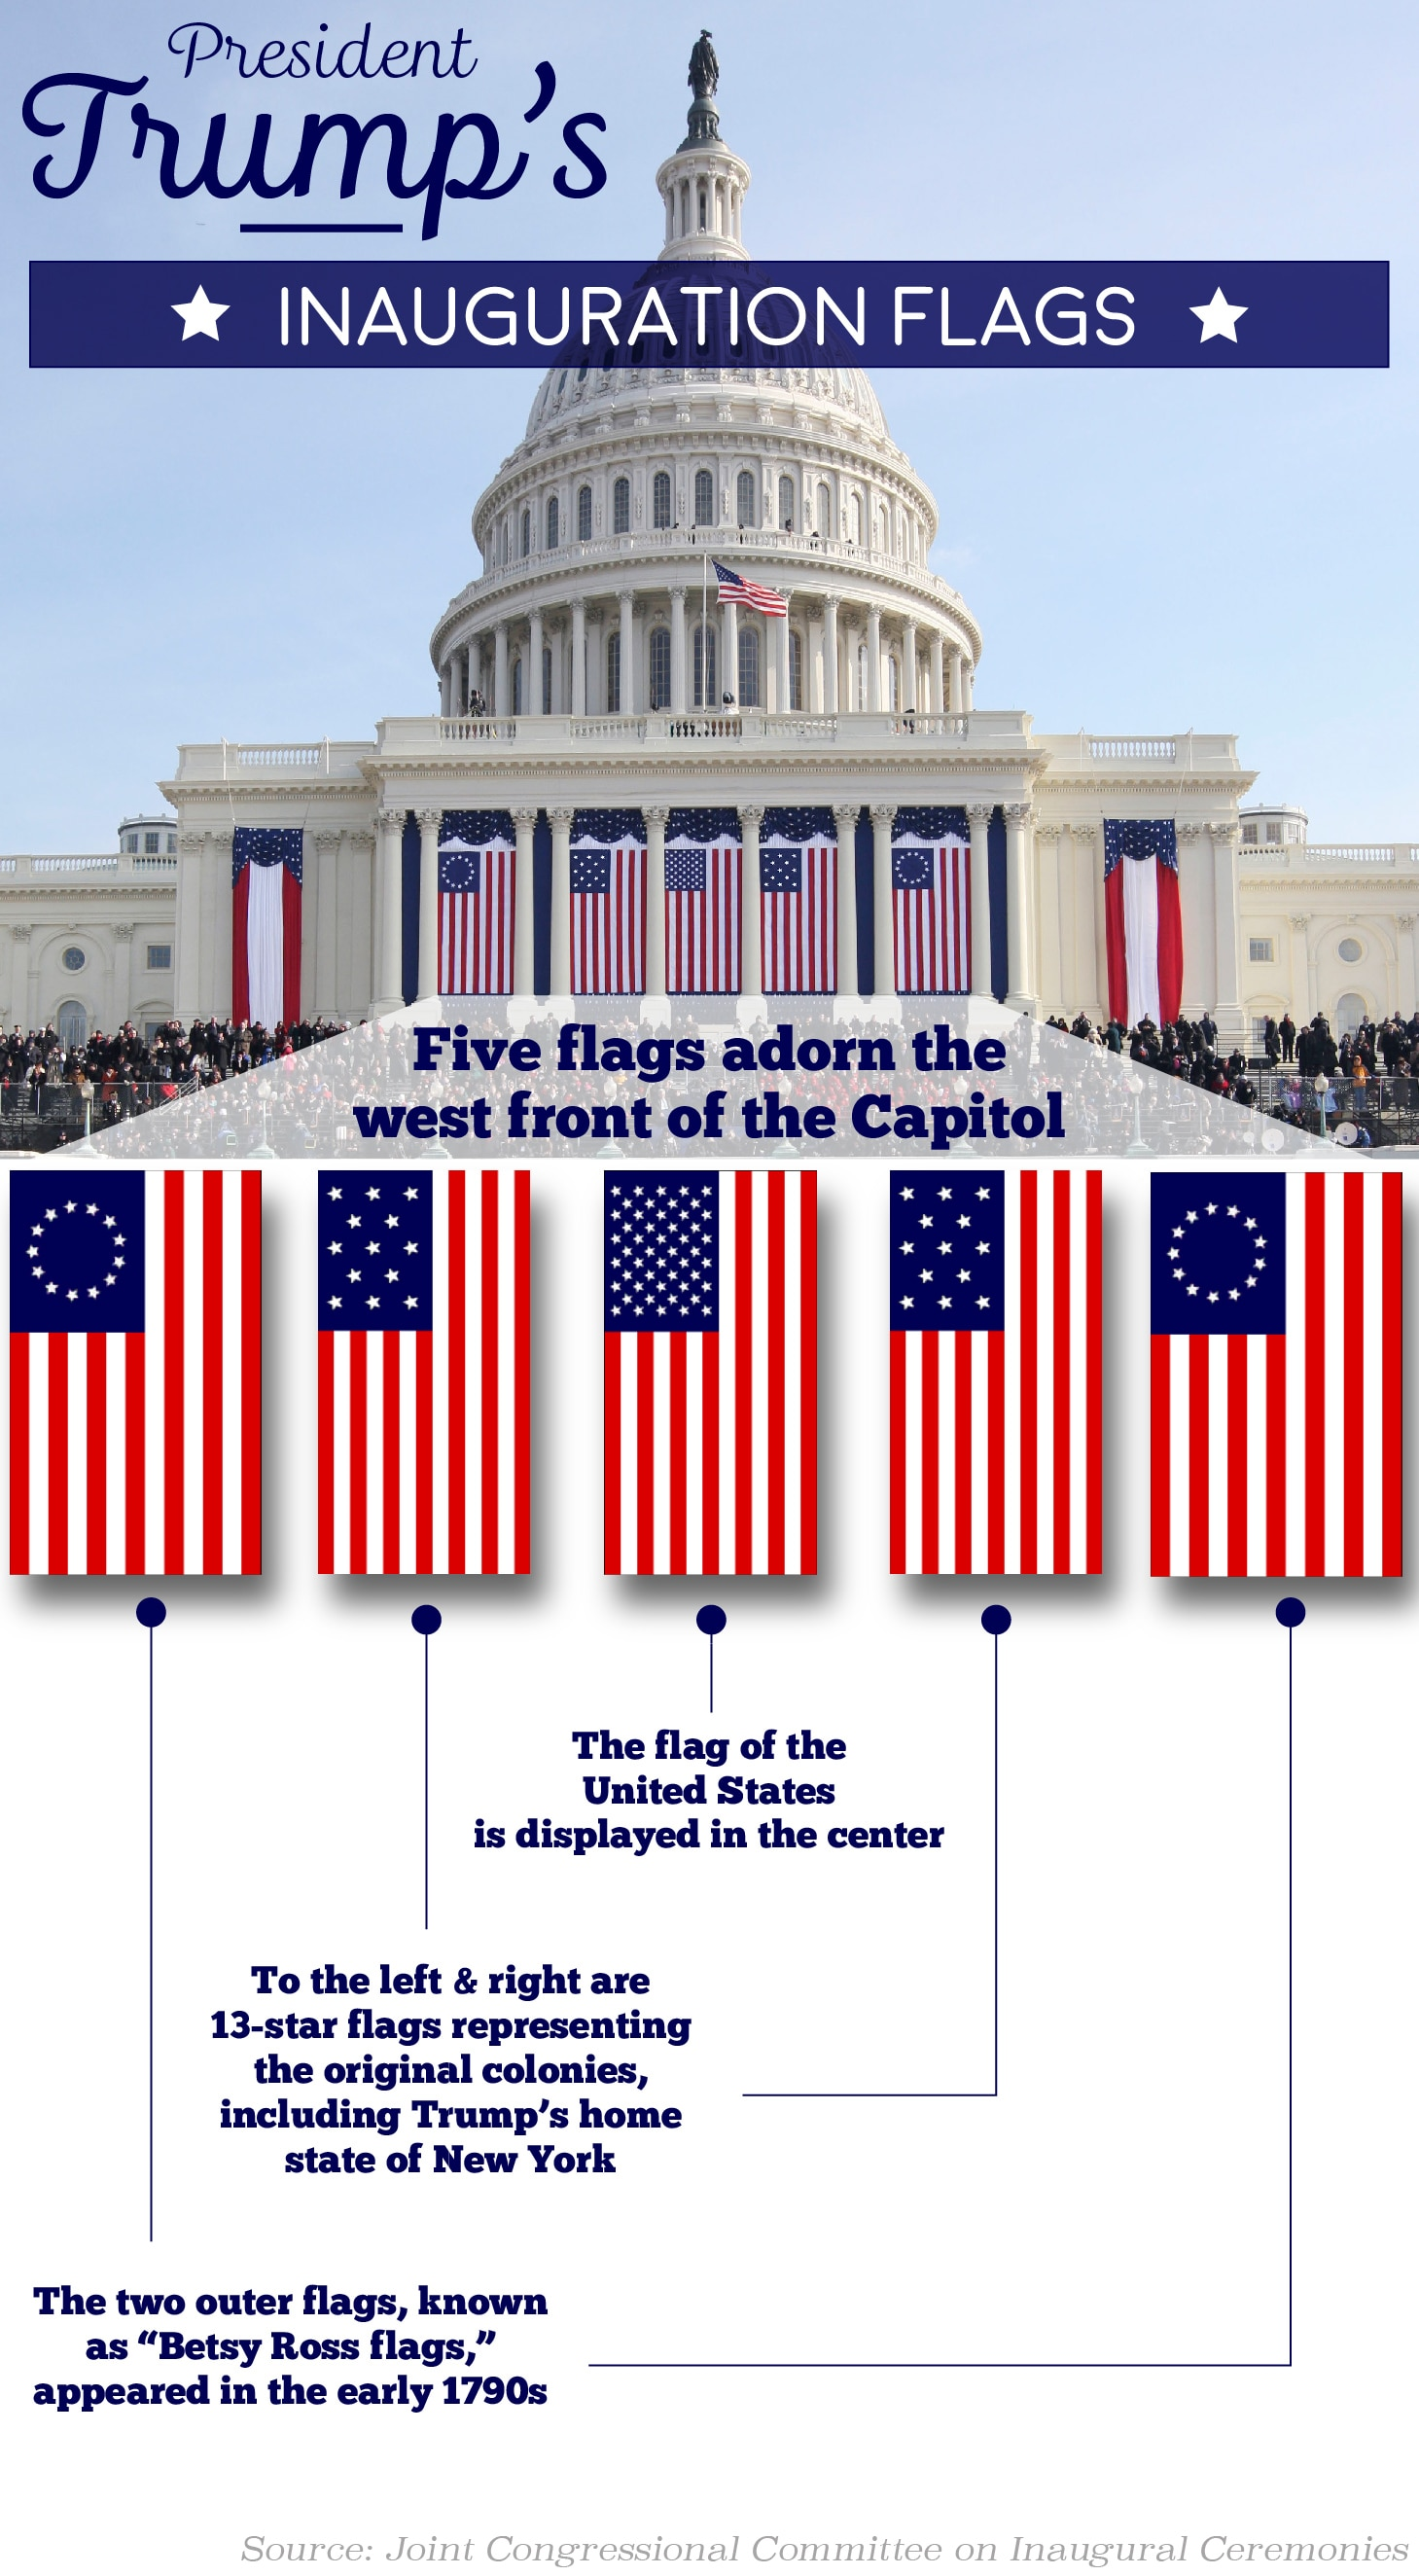 Graphic illustration explaining significance of different U.S. flags on display in front of the U.S. Capitol building for presidential inauguration (State Dept./Sara Gemeny Wilkinson)